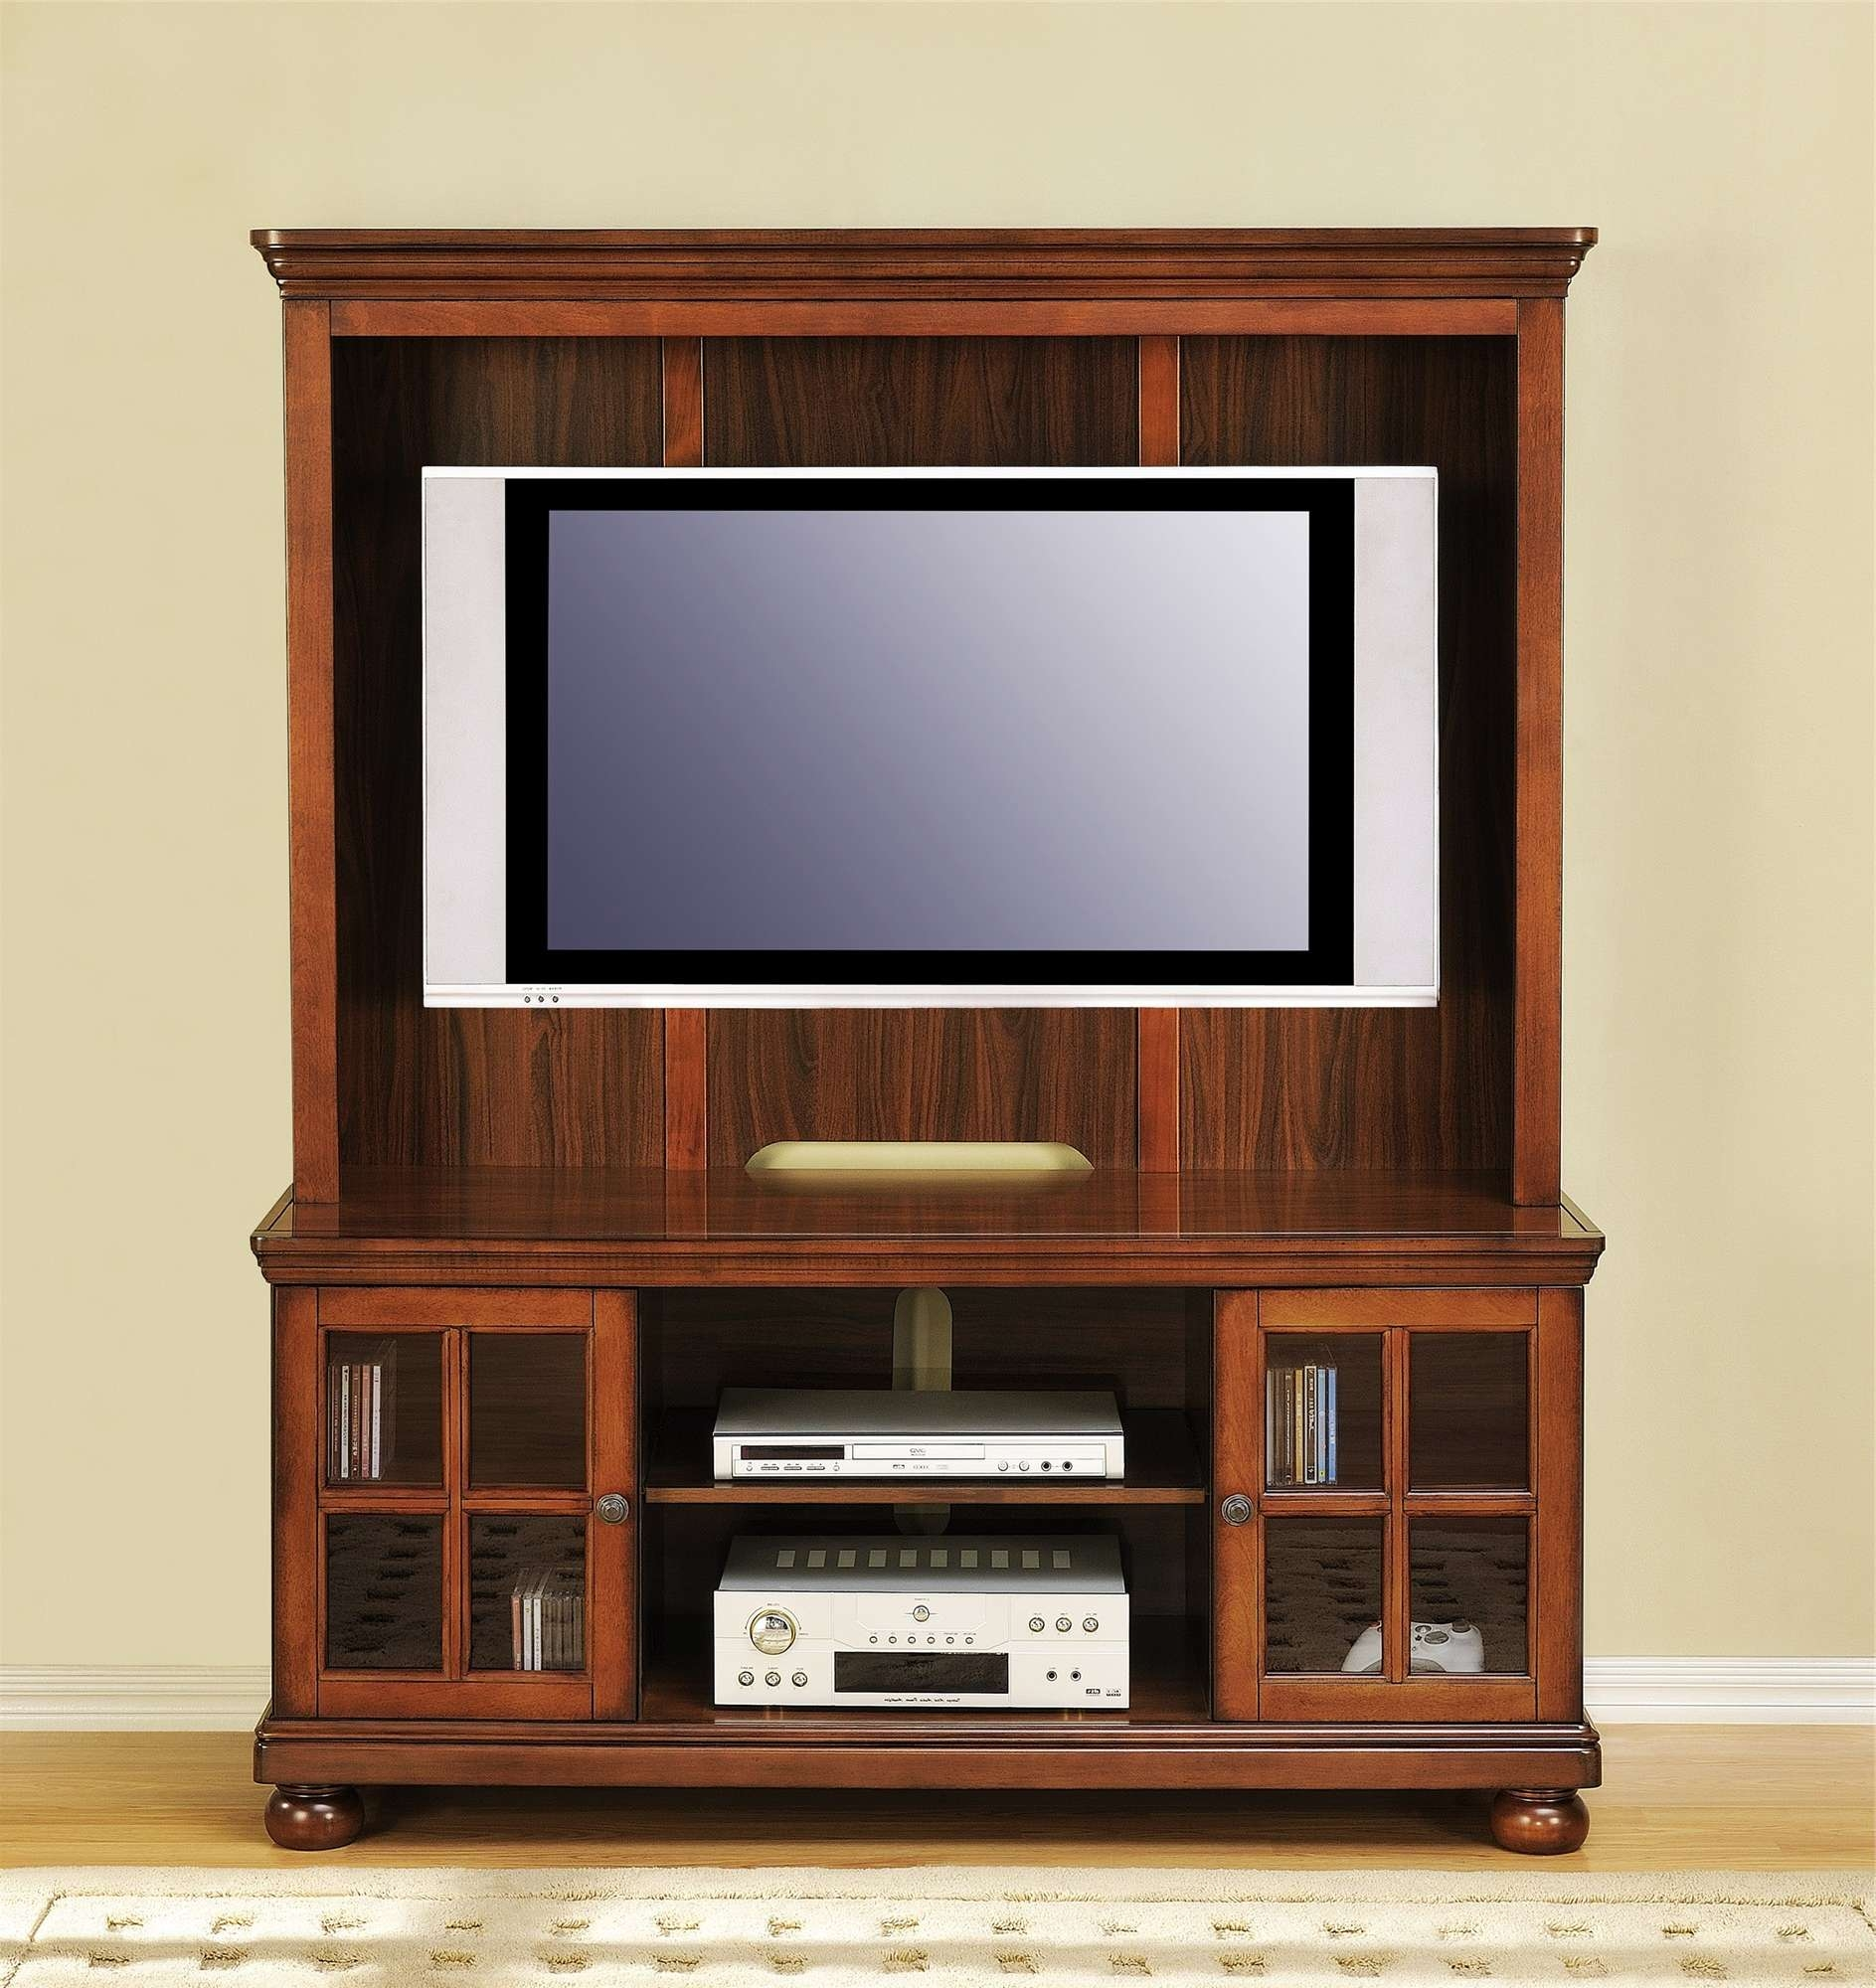 Tall Brown Santos Mahogany Wood Media Cabinet With Mounted Flat Throughout Modern Tv Cabinets For Flat Screens (View 16 of 20)